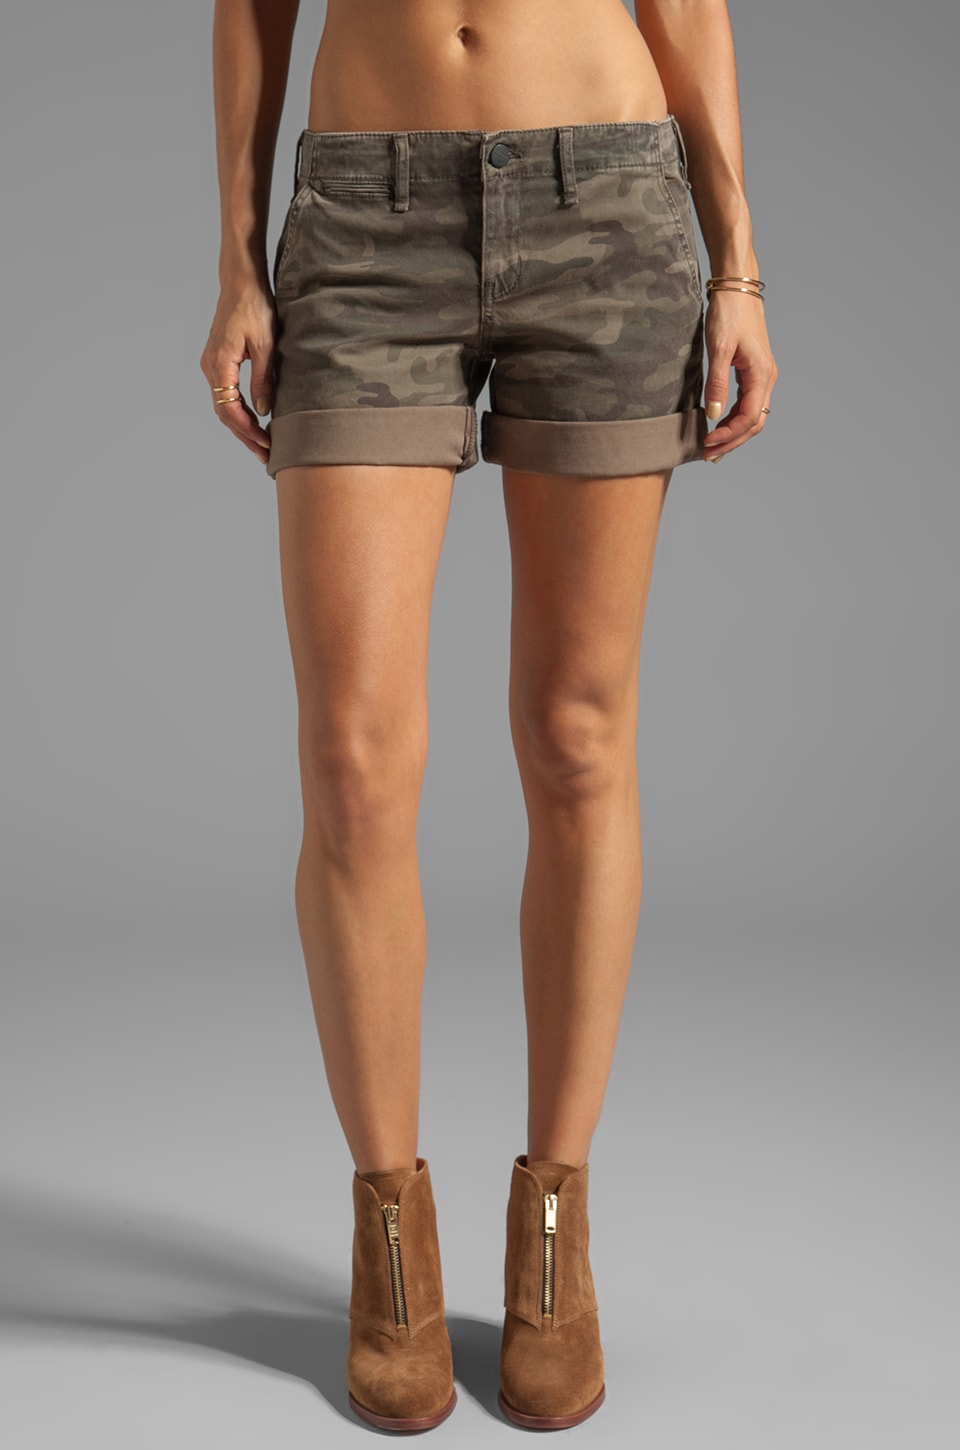 Sanctuary Modern Nomad Liberty Roll Short in Safari